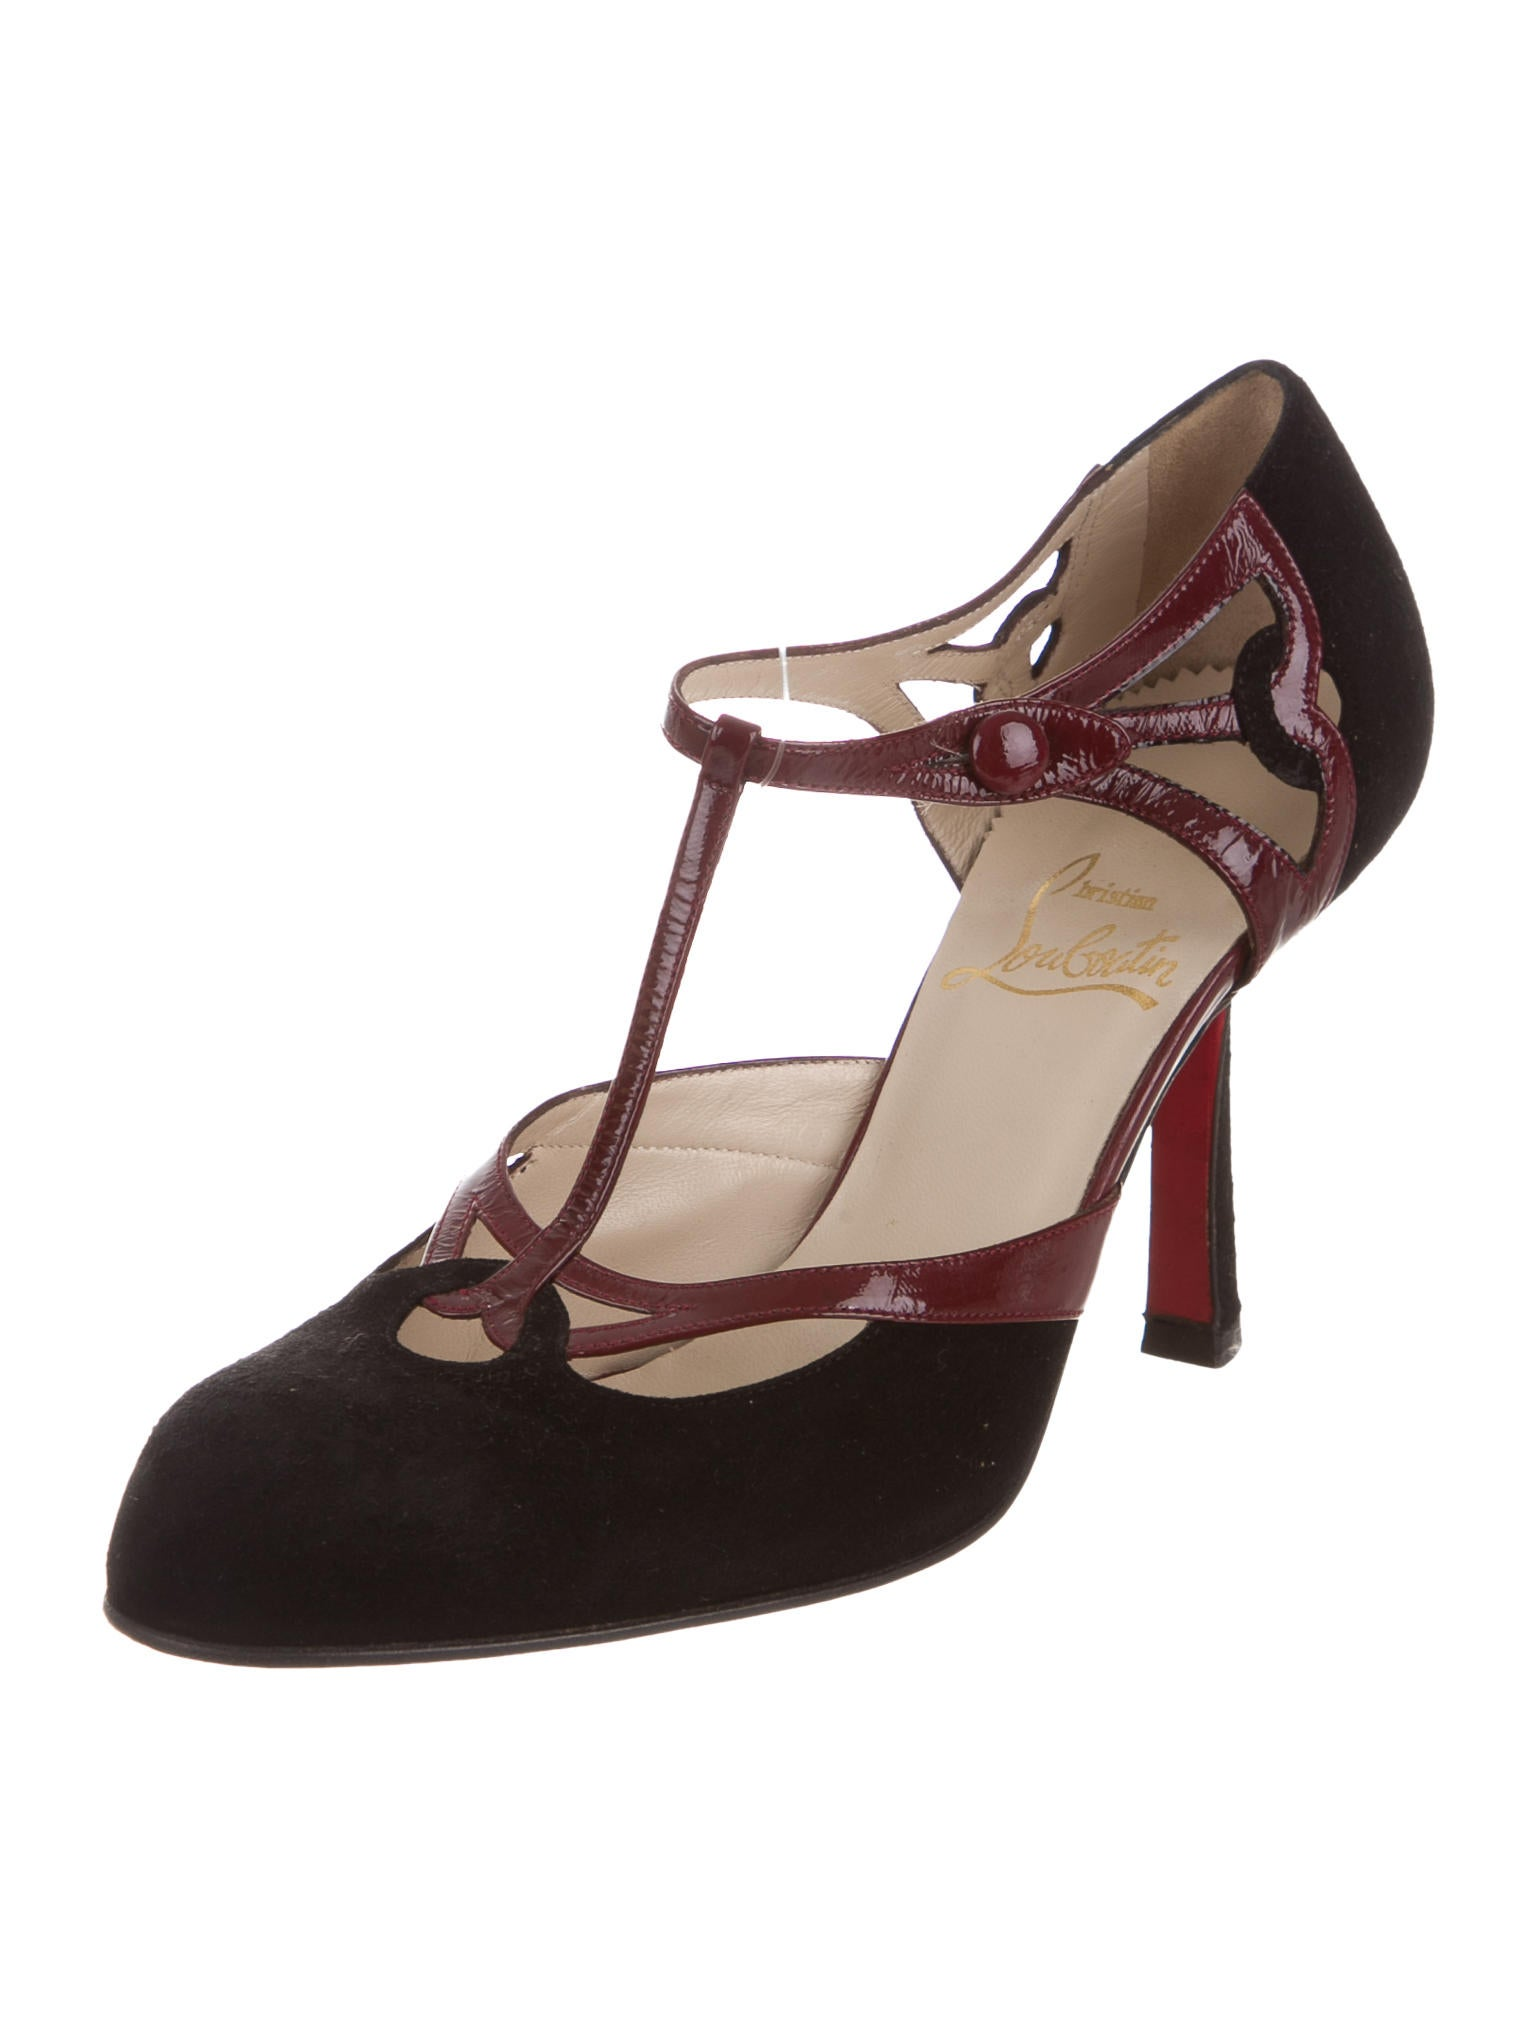 christian louboutin cutout t strap pumps shoes cht70073 the realreal. Black Bedroom Furniture Sets. Home Design Ideas